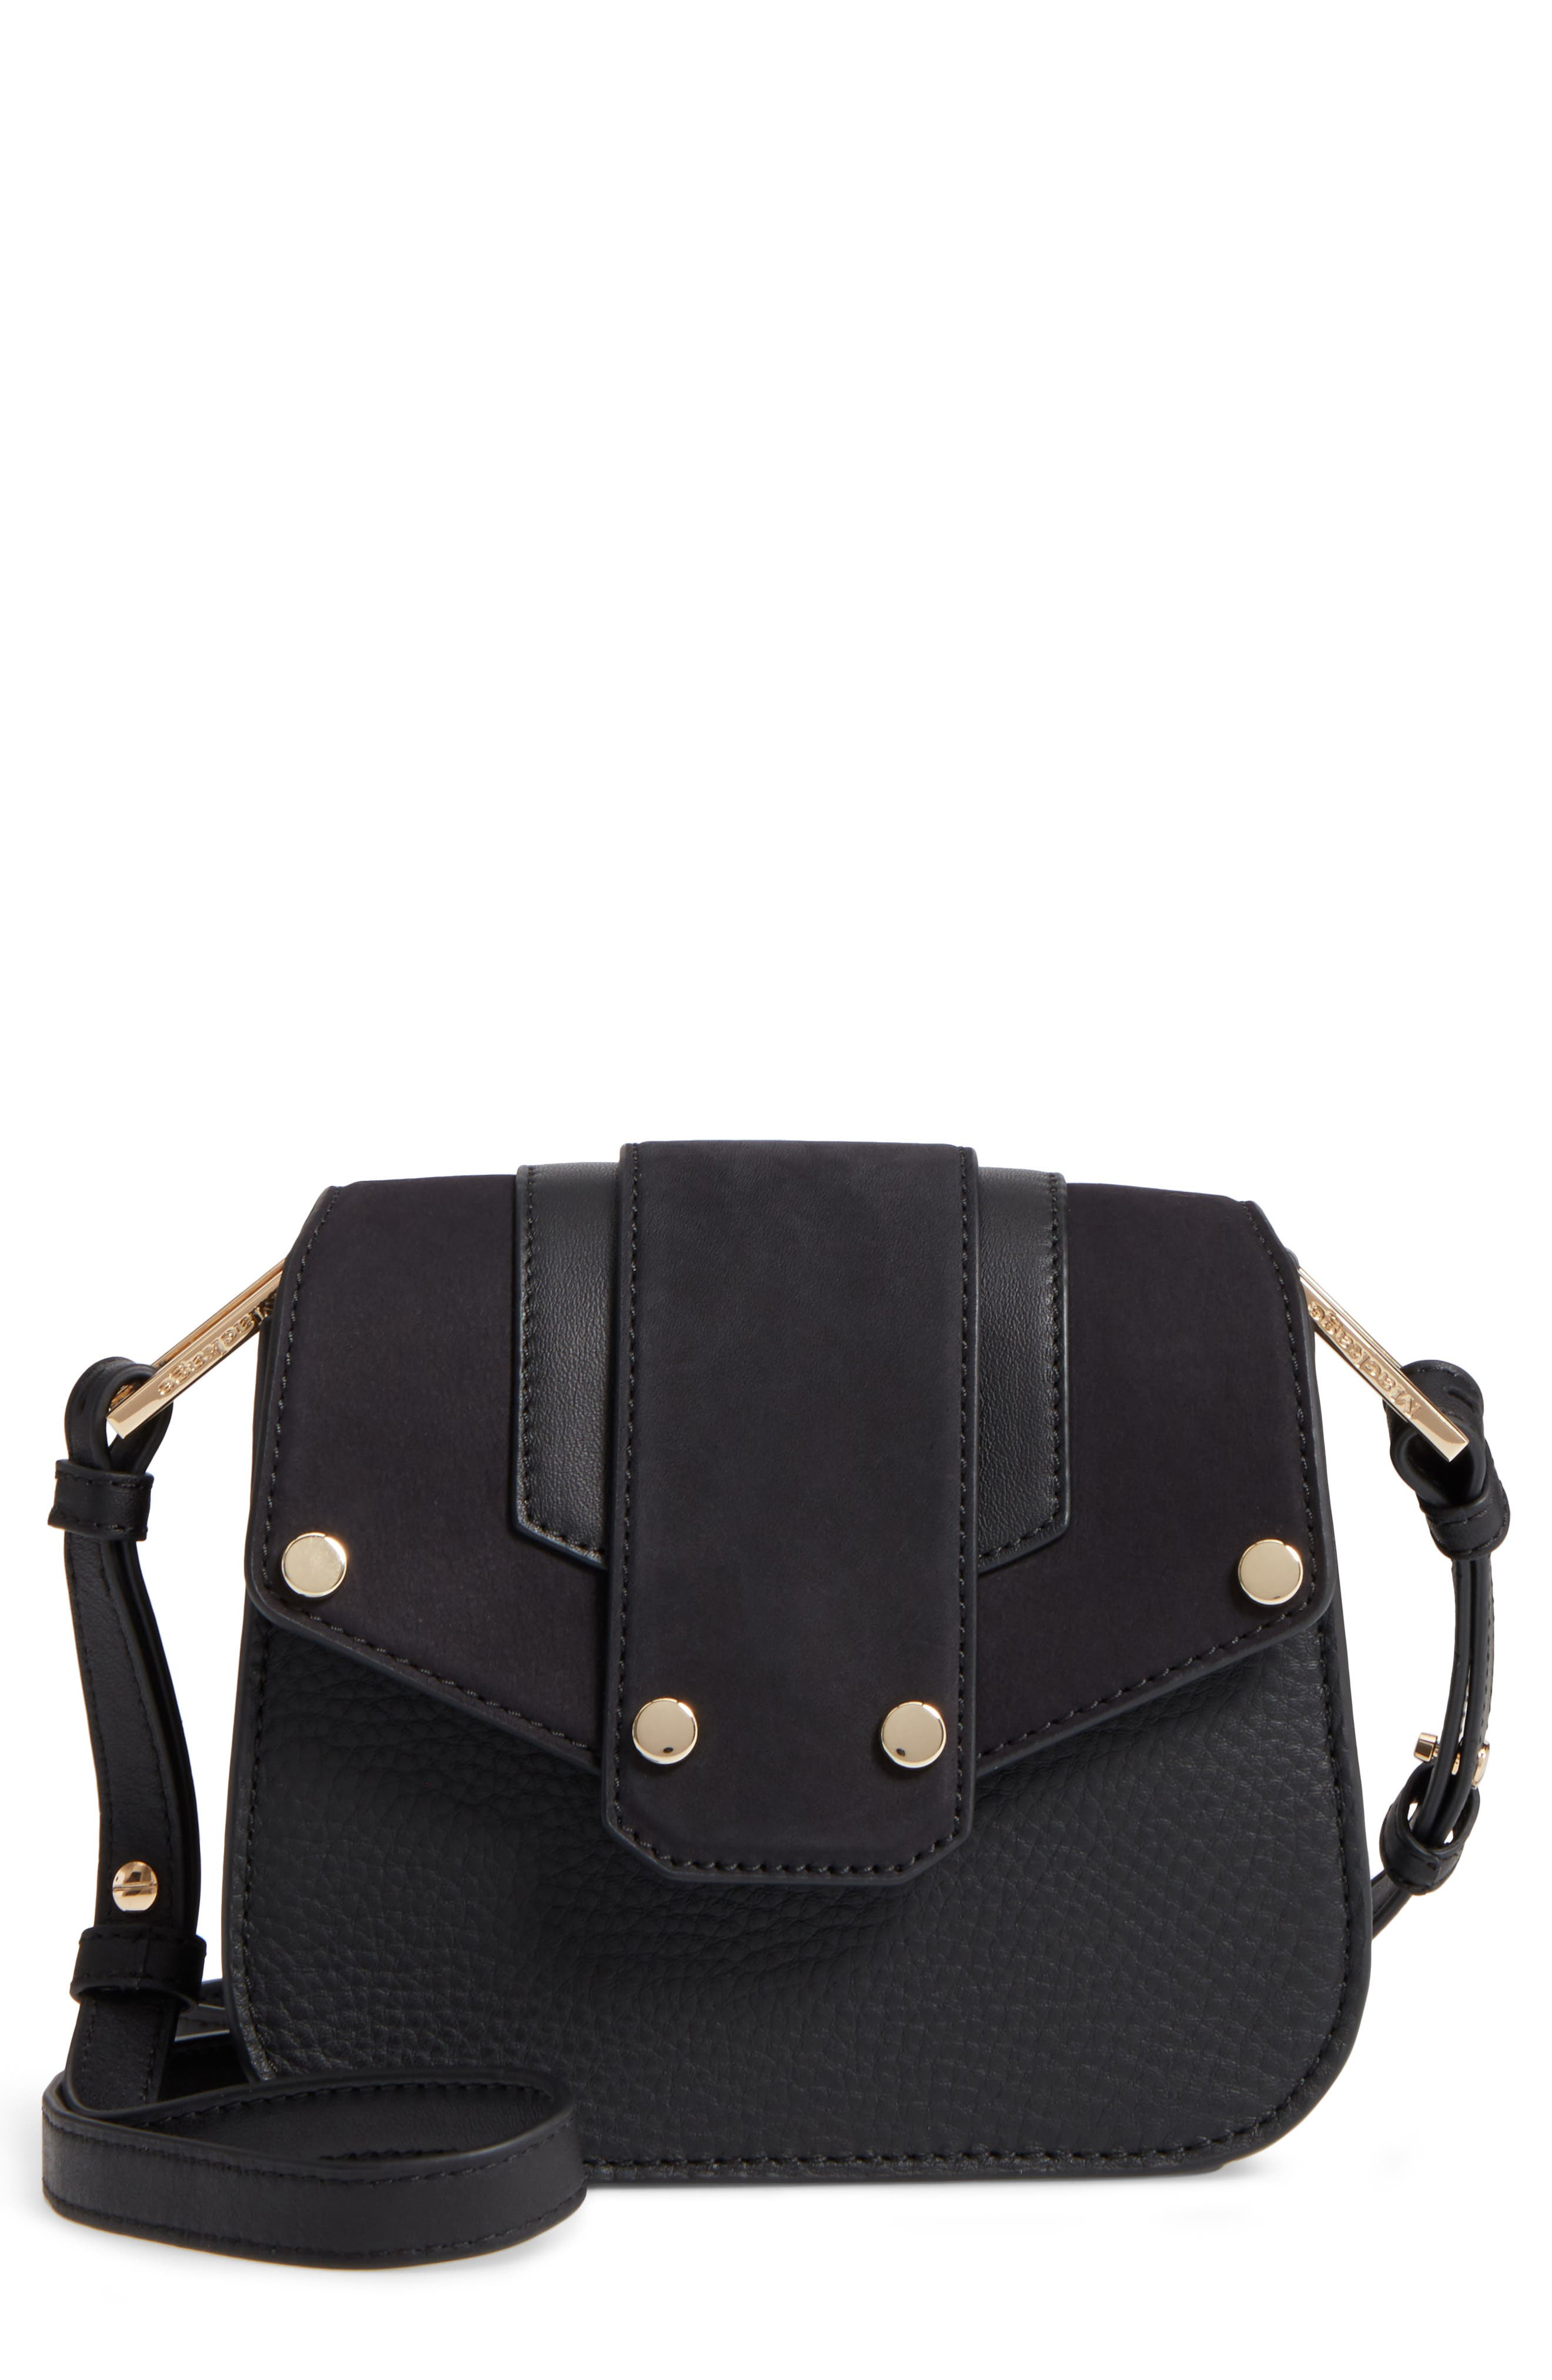 Main Image - Mackage Mini Polly Leather Crossbody Bag